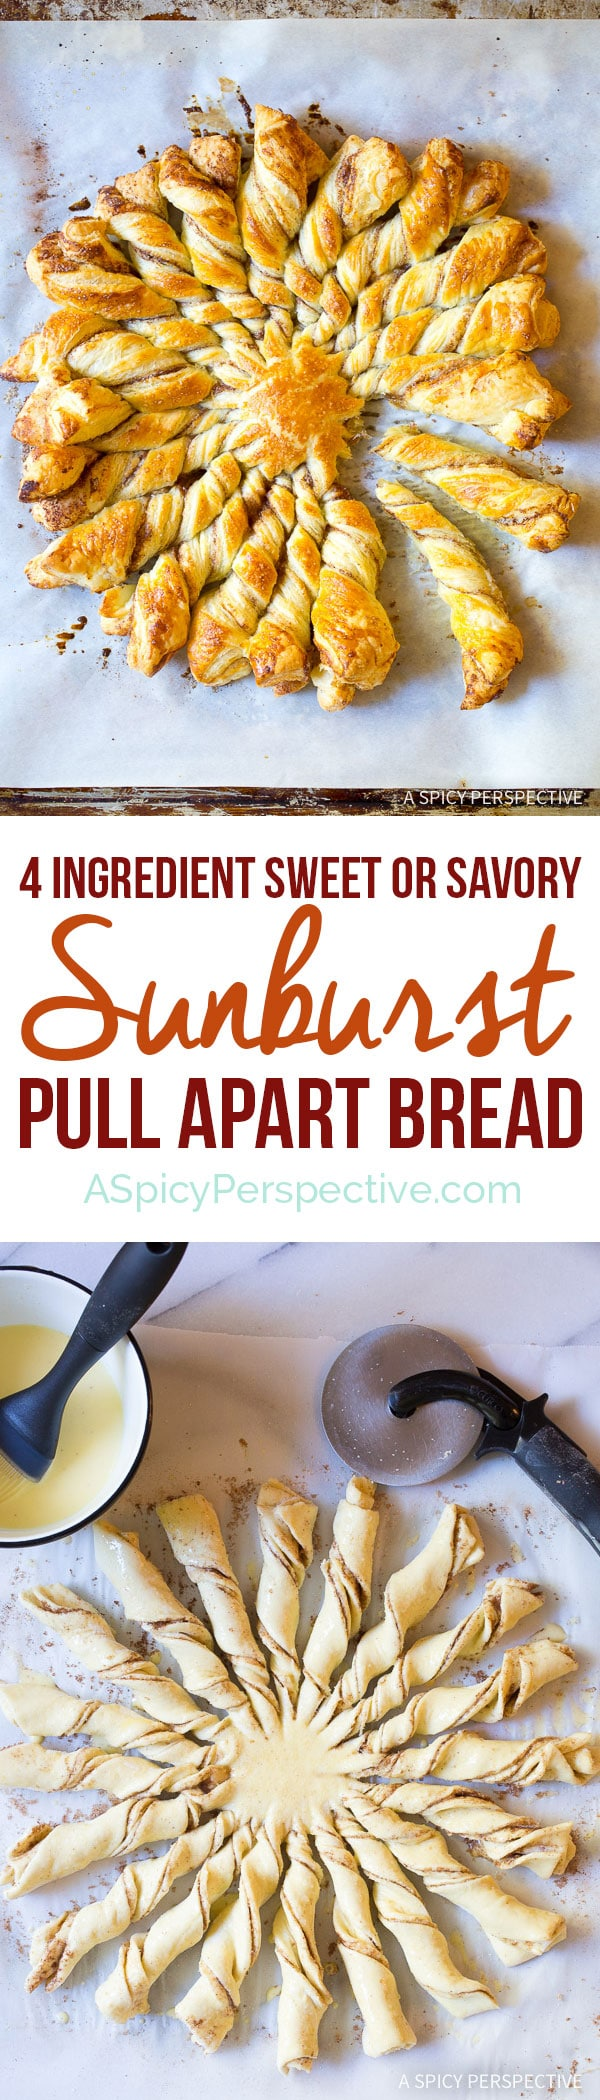 Great for the Holidays! Easy 4-Ingredient Sunburst Pull Apart Bread on ASpicyPerspective.com